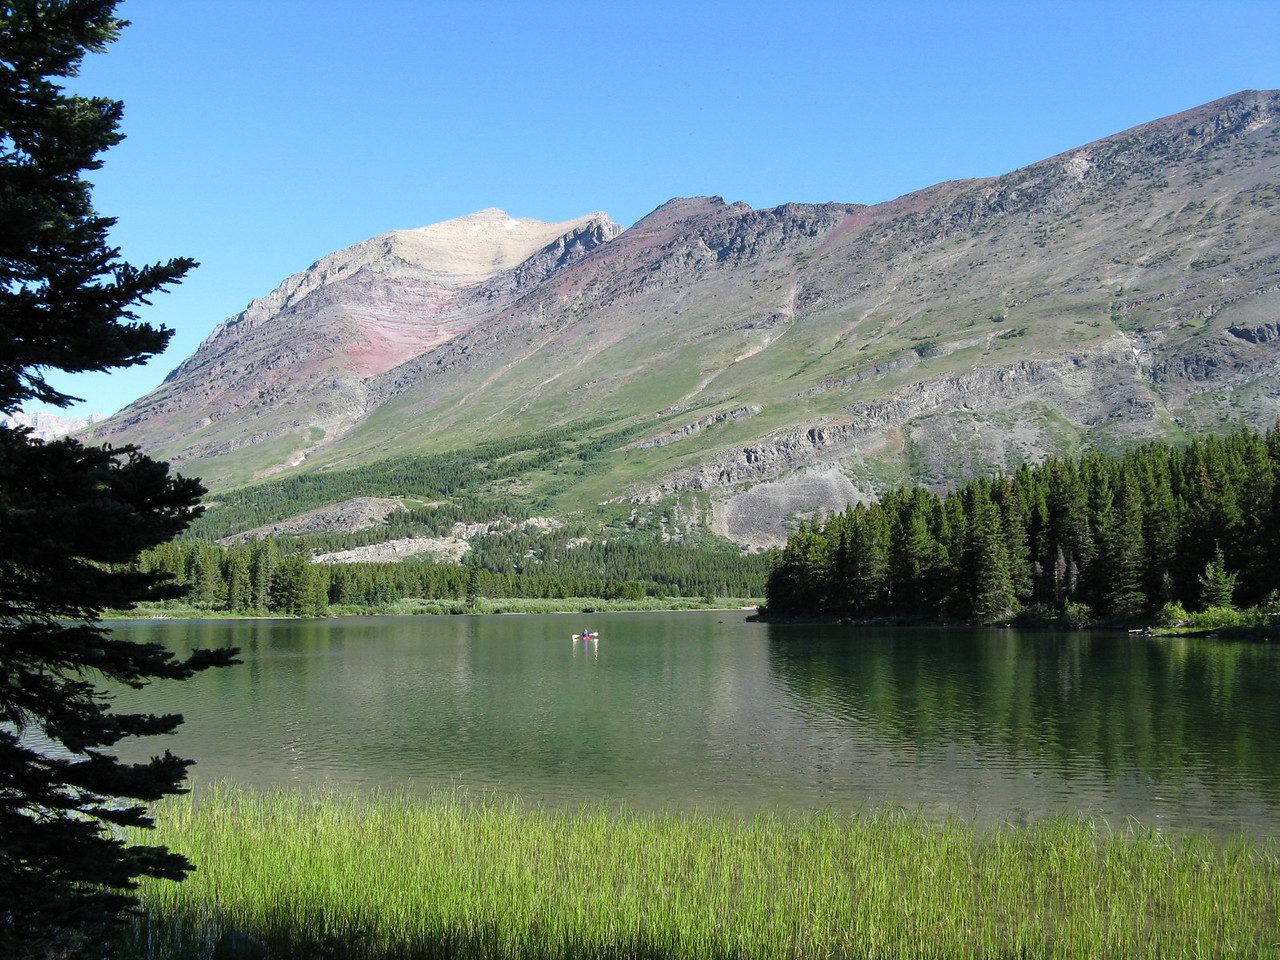 Looking northwest from the upper south shore trail around Swiftcurrent Lake.